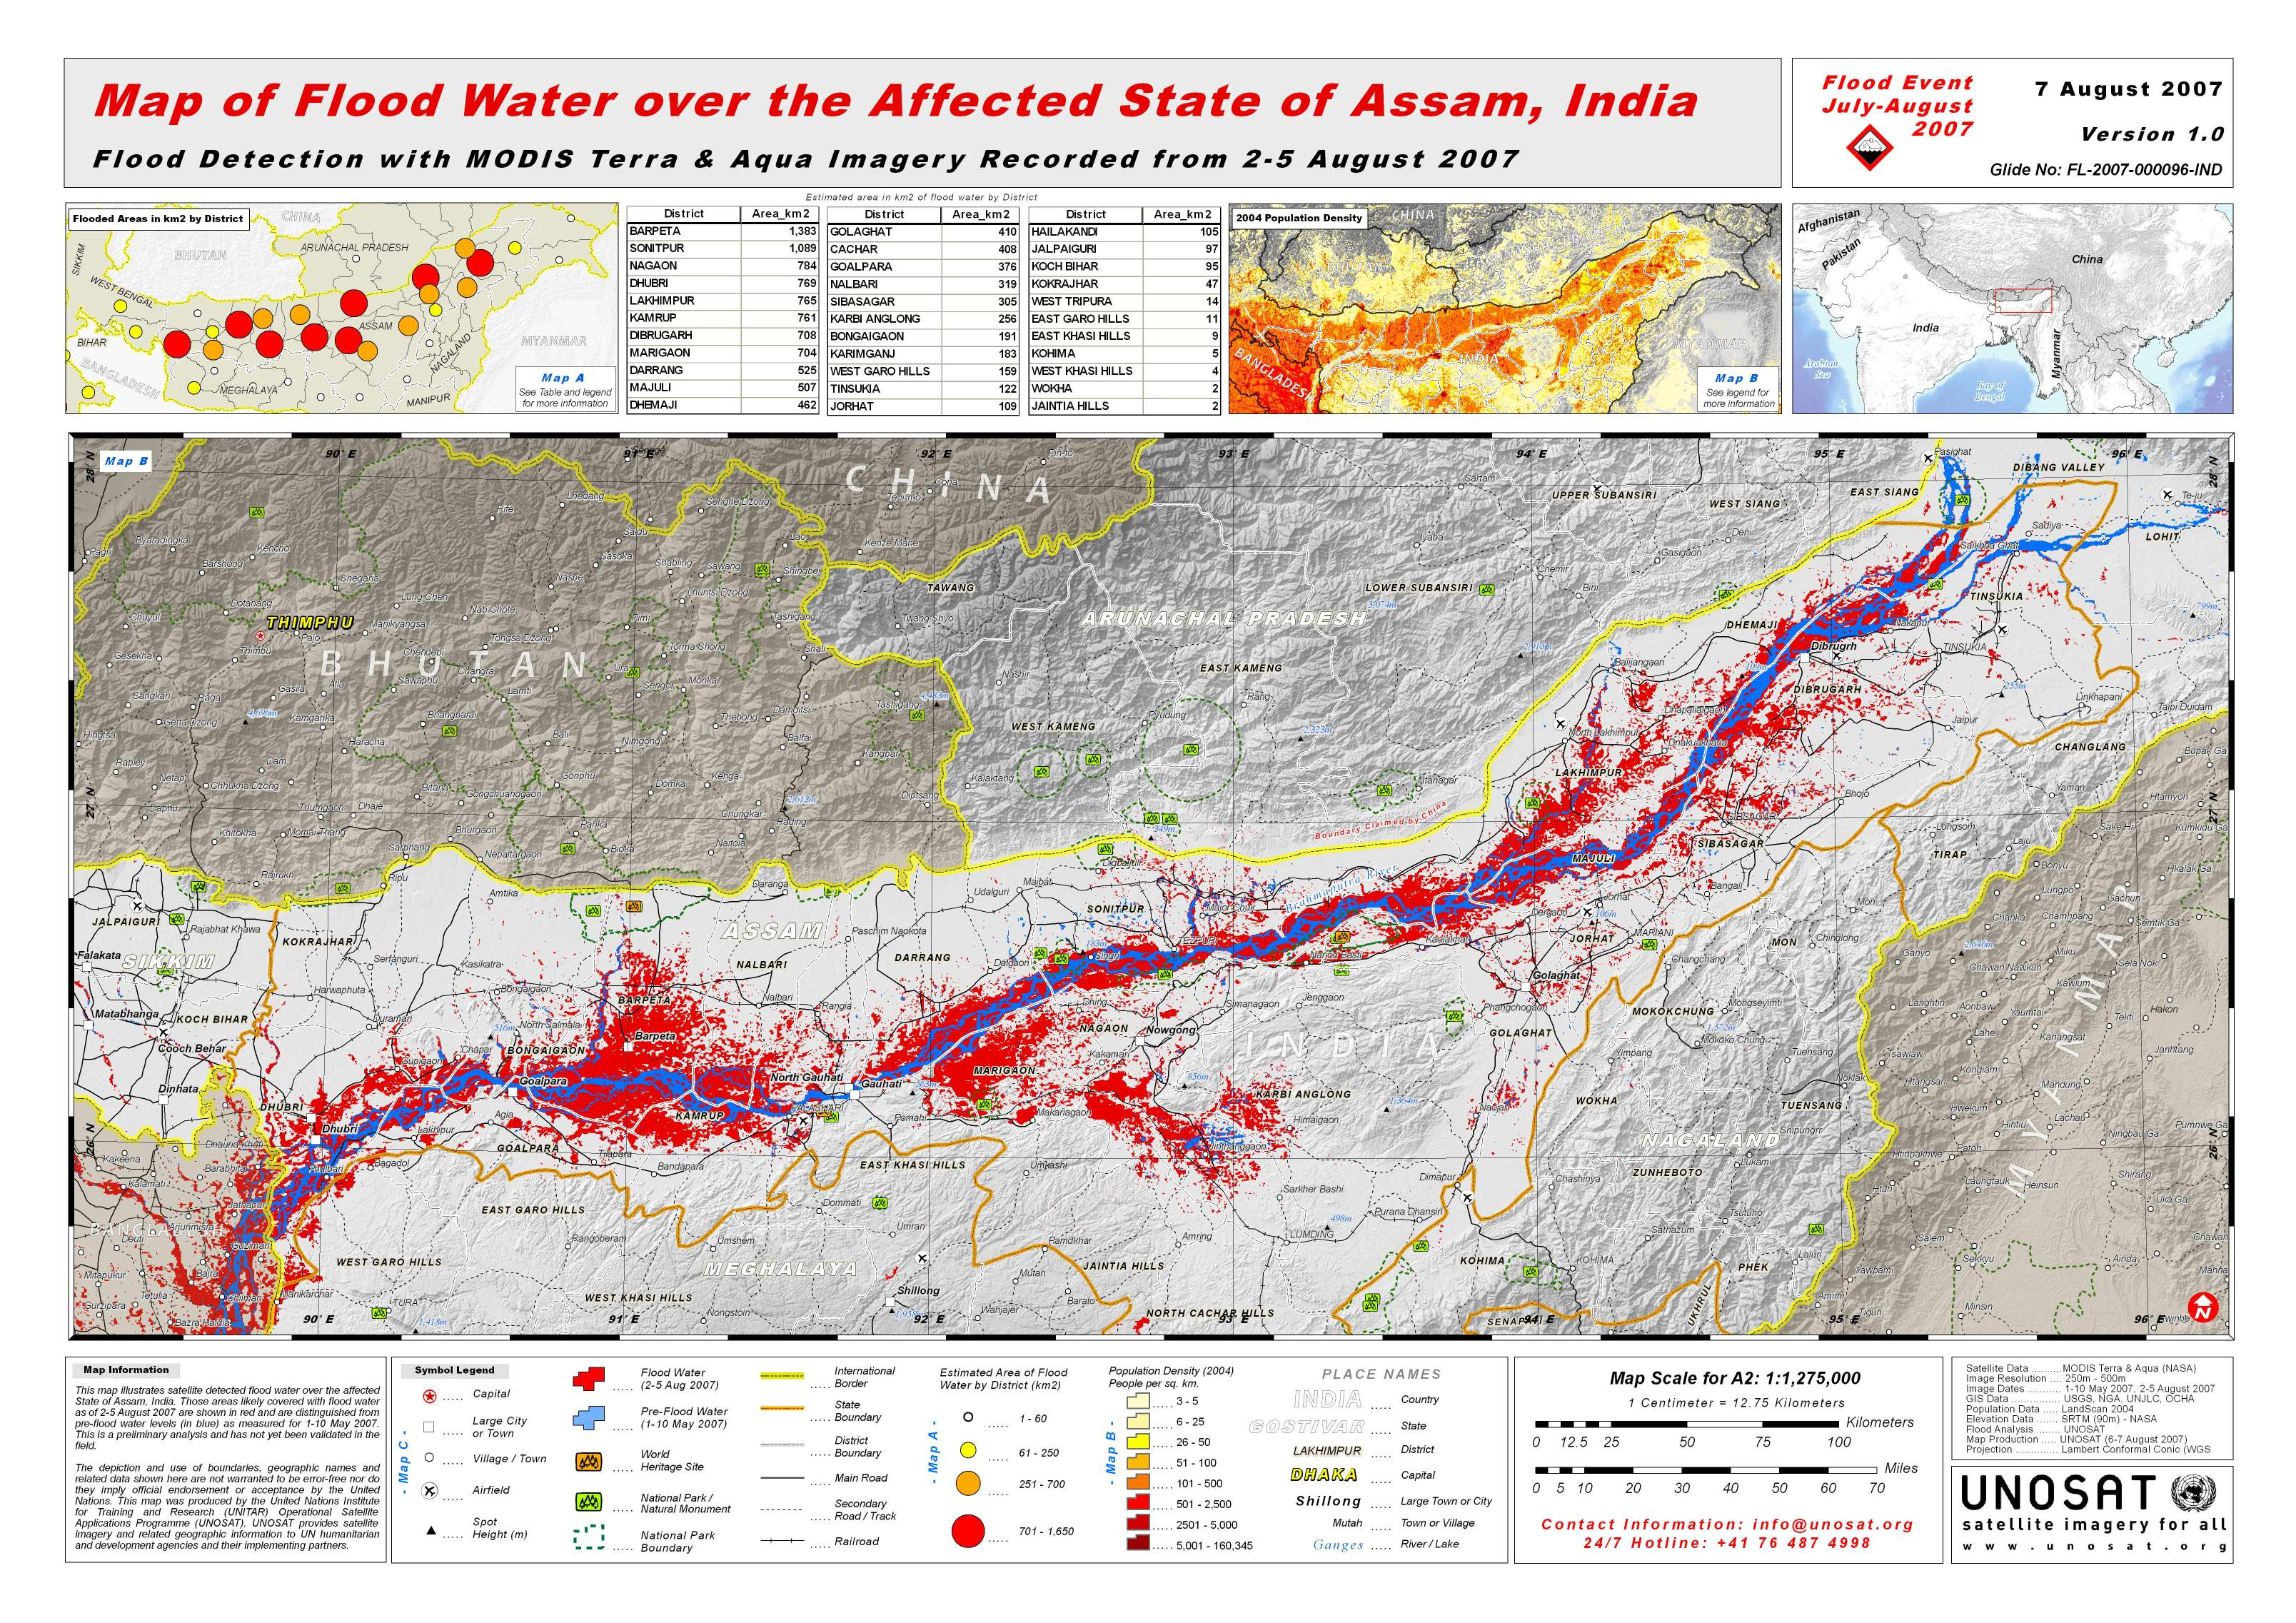 Map of Flood Water over the Affected State of Assam India  UNITAR